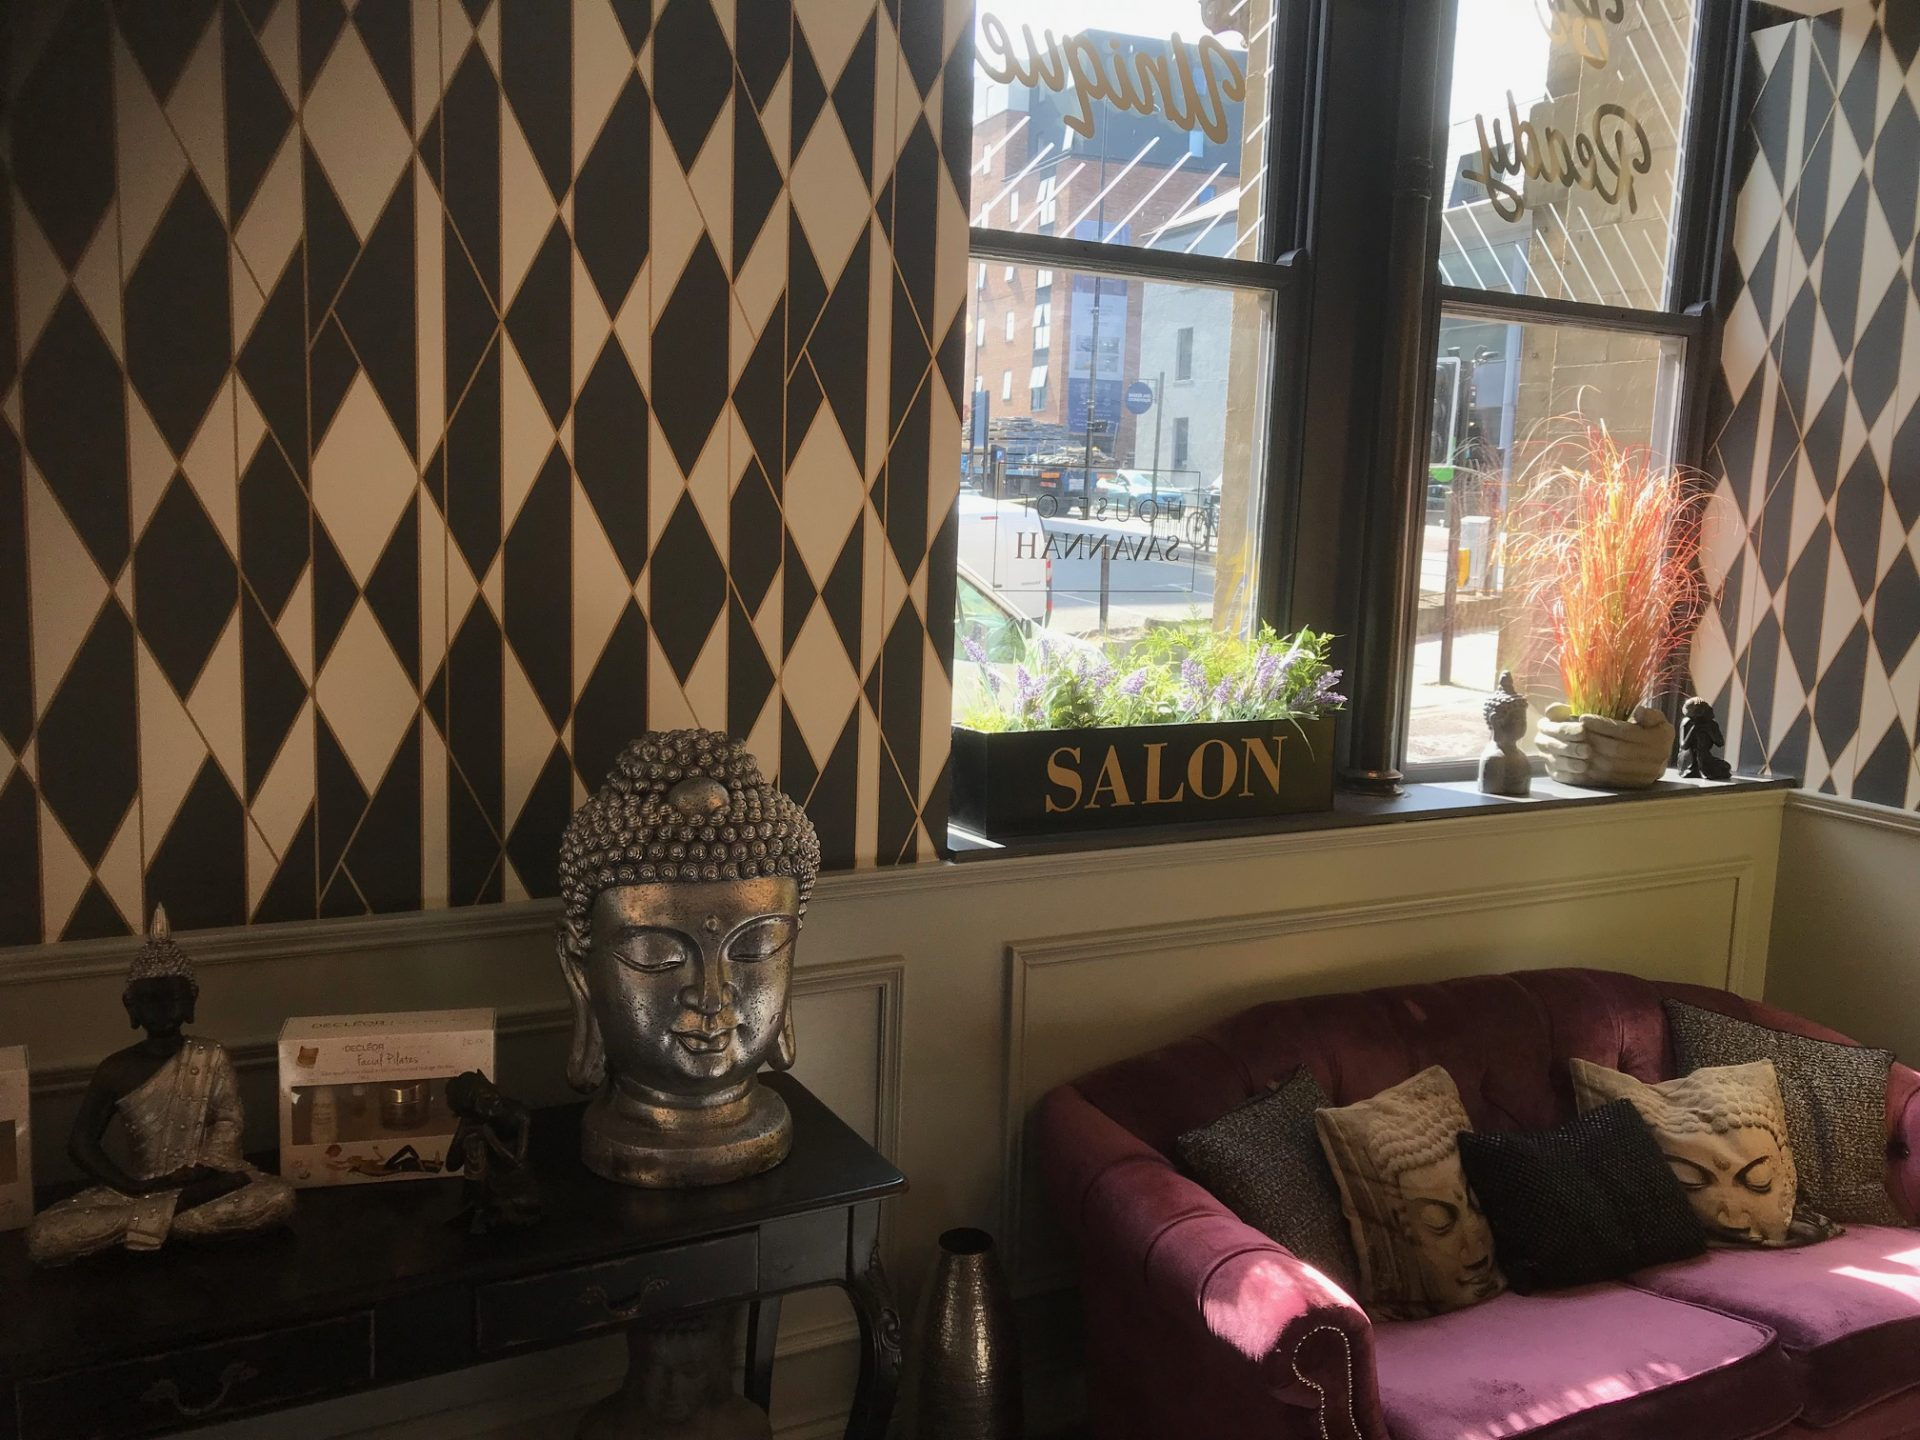 HOUSE OF SAVANNAH SALON AND SPA NEW LOCATION, NEWCASTLE UPON THAMES